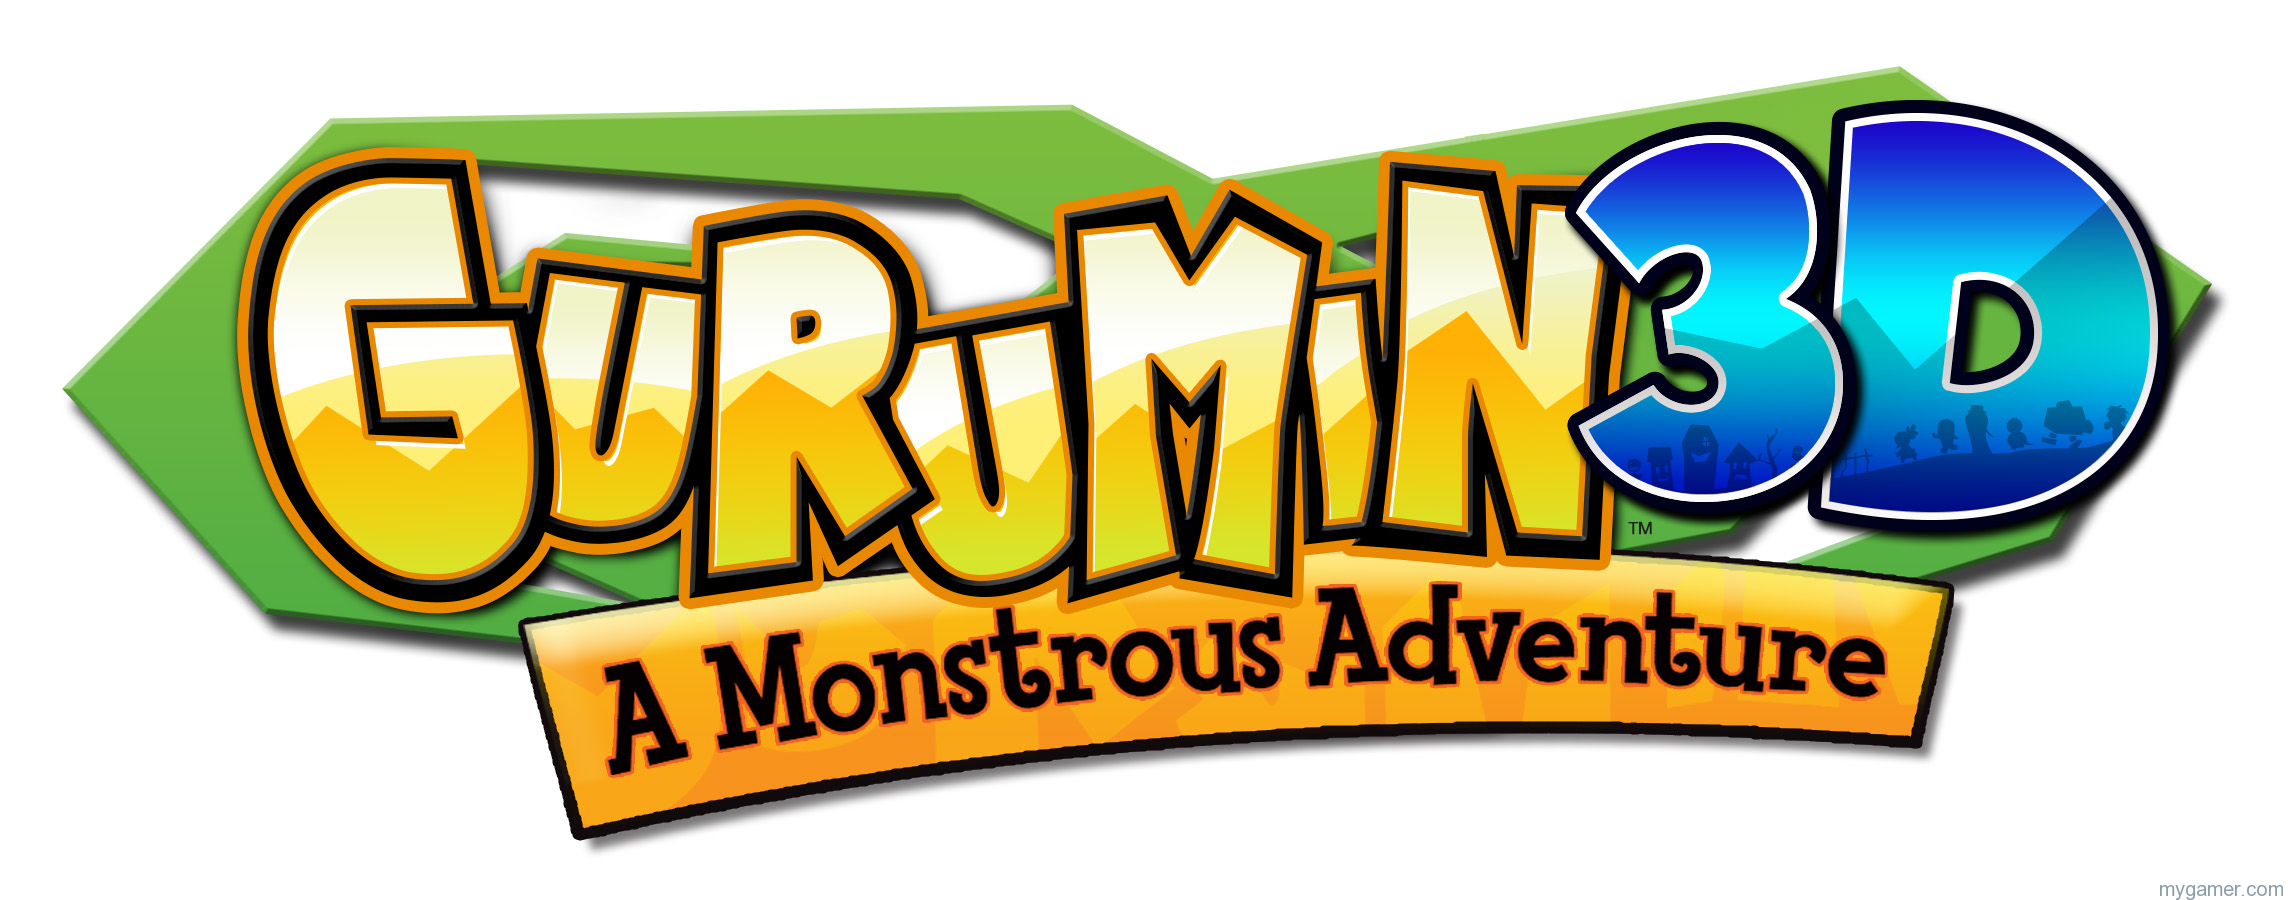 gurumin-3d-banner Exclusive Interview with Mastiff – Gurumin: A Monstrous Adventure 3D 3DS eShop Exclusive Interview with Mastiff – Gurumin: A Monstrous Adventure 3D (3DS eShop) Gurumin 3D Banner